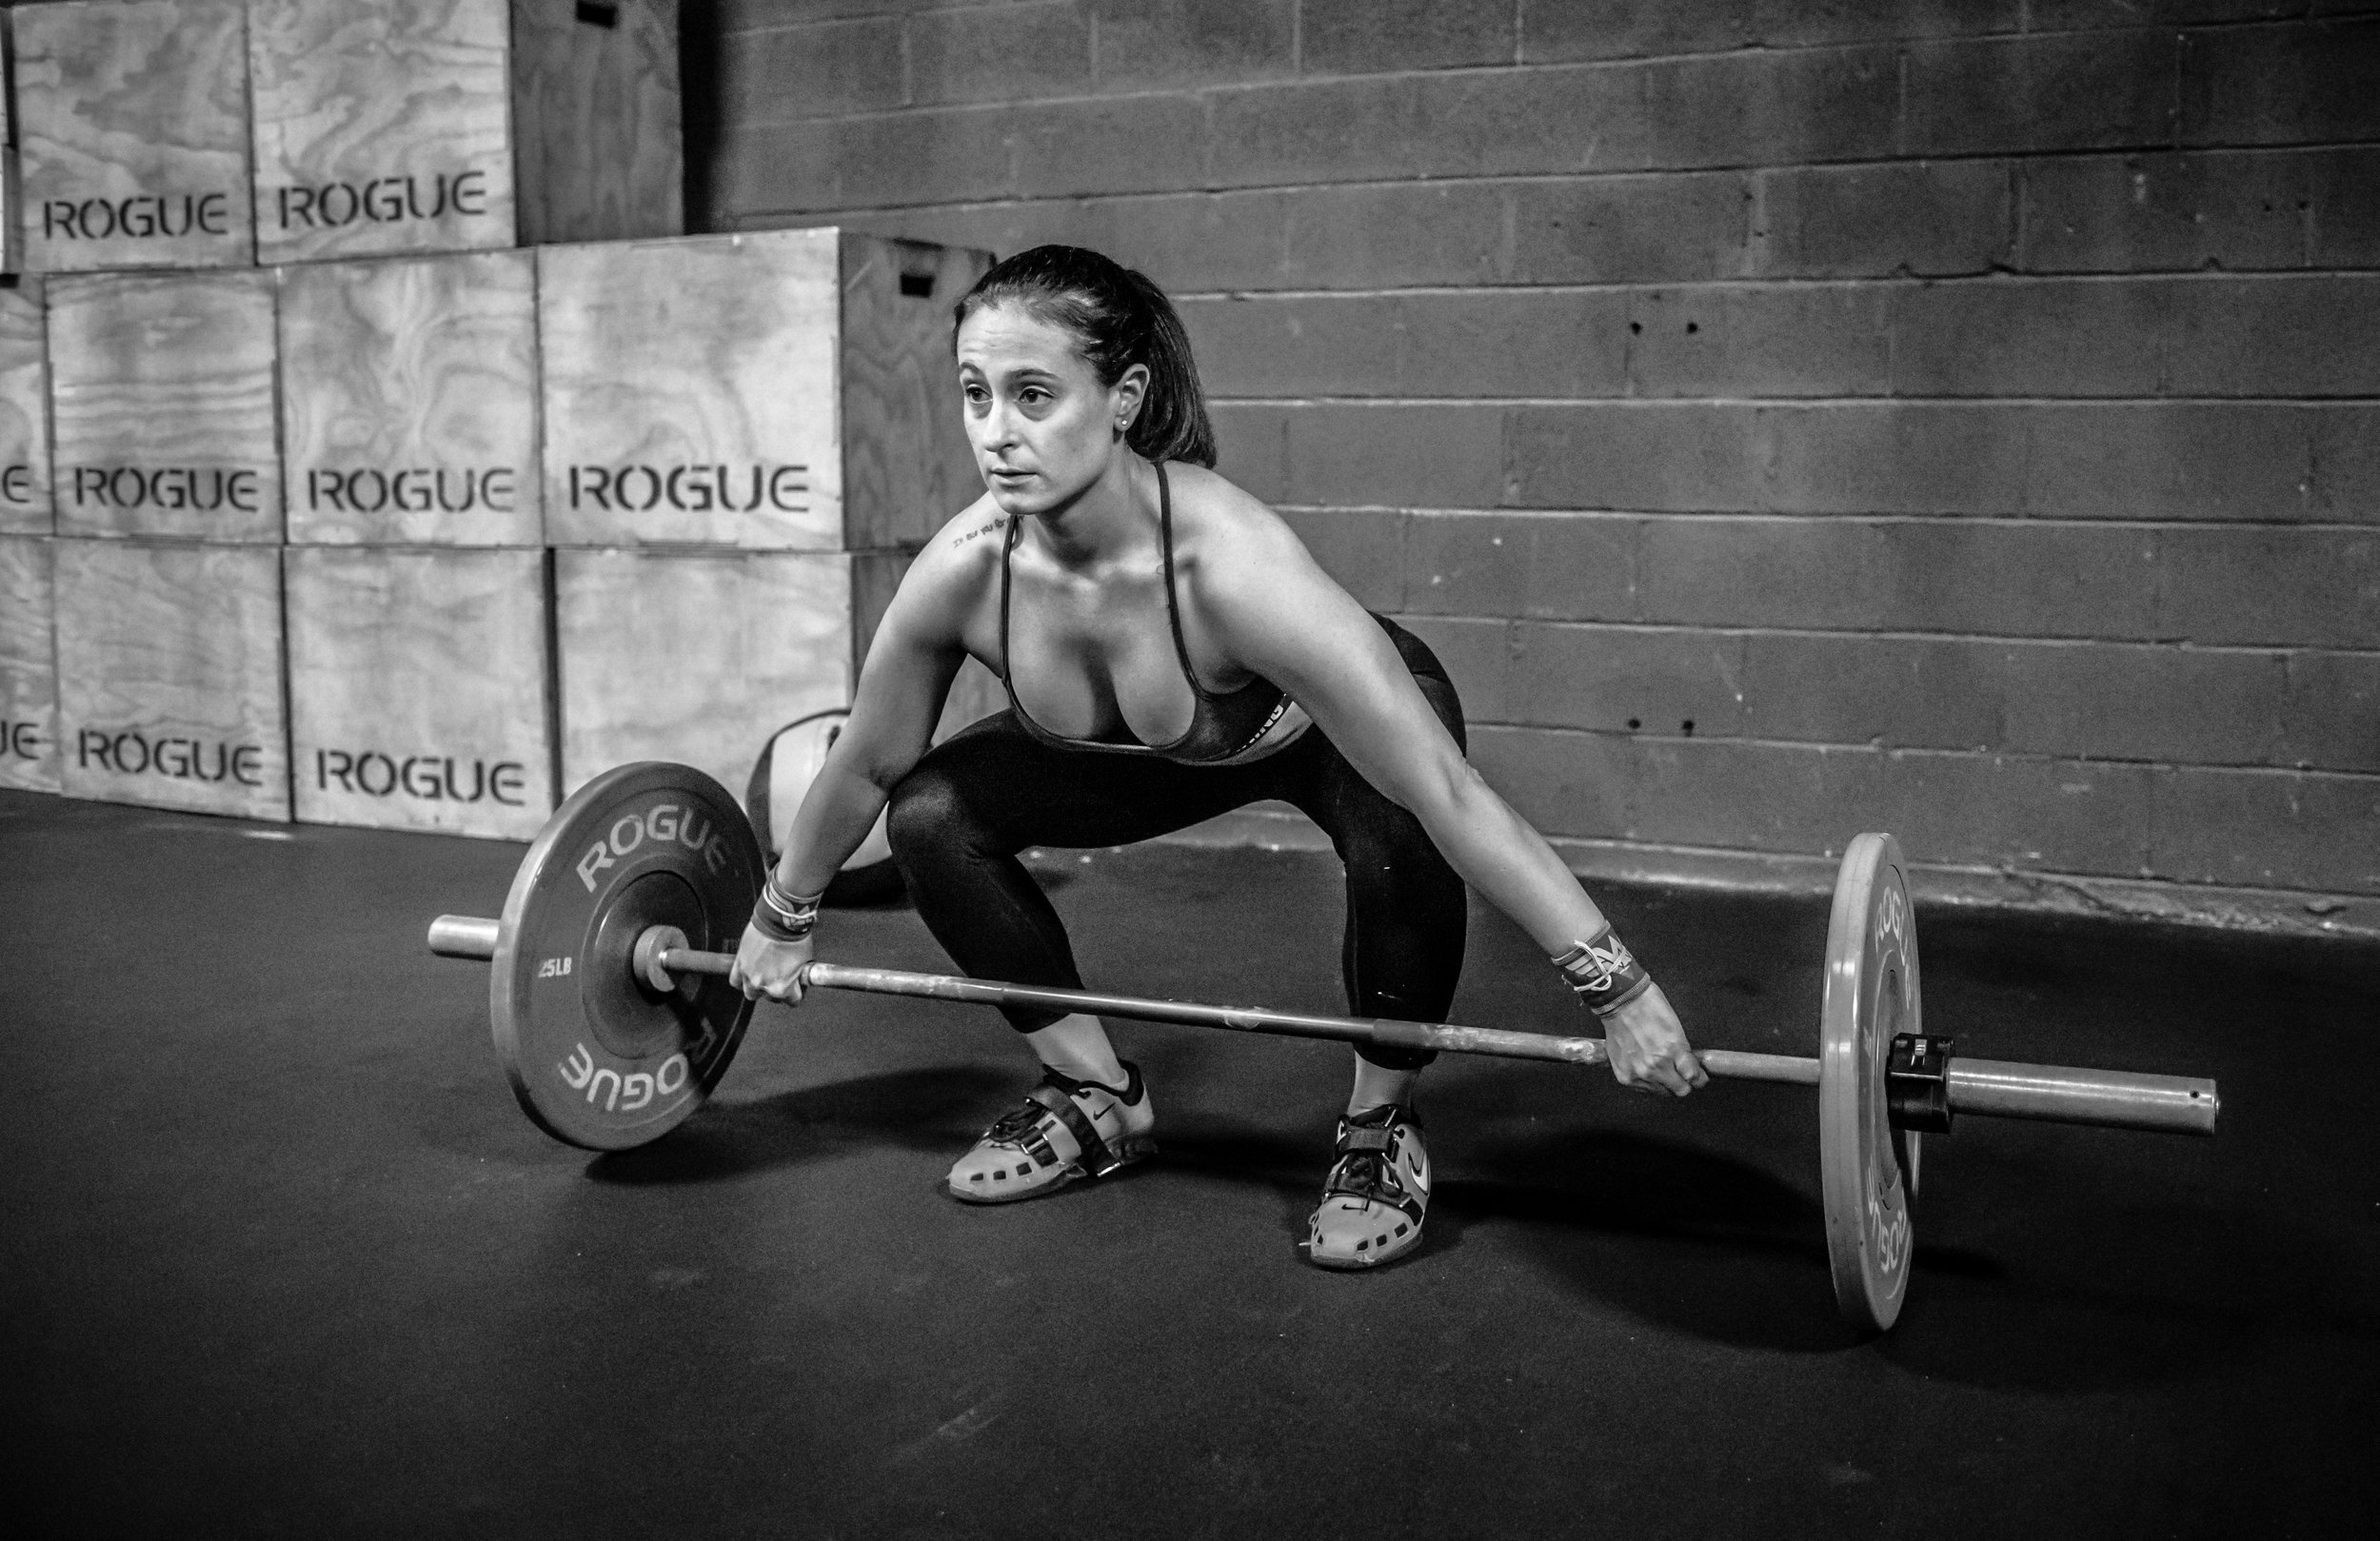 rogue-boxes-crossfit-photo-shoot-everyday-lifters.jpg